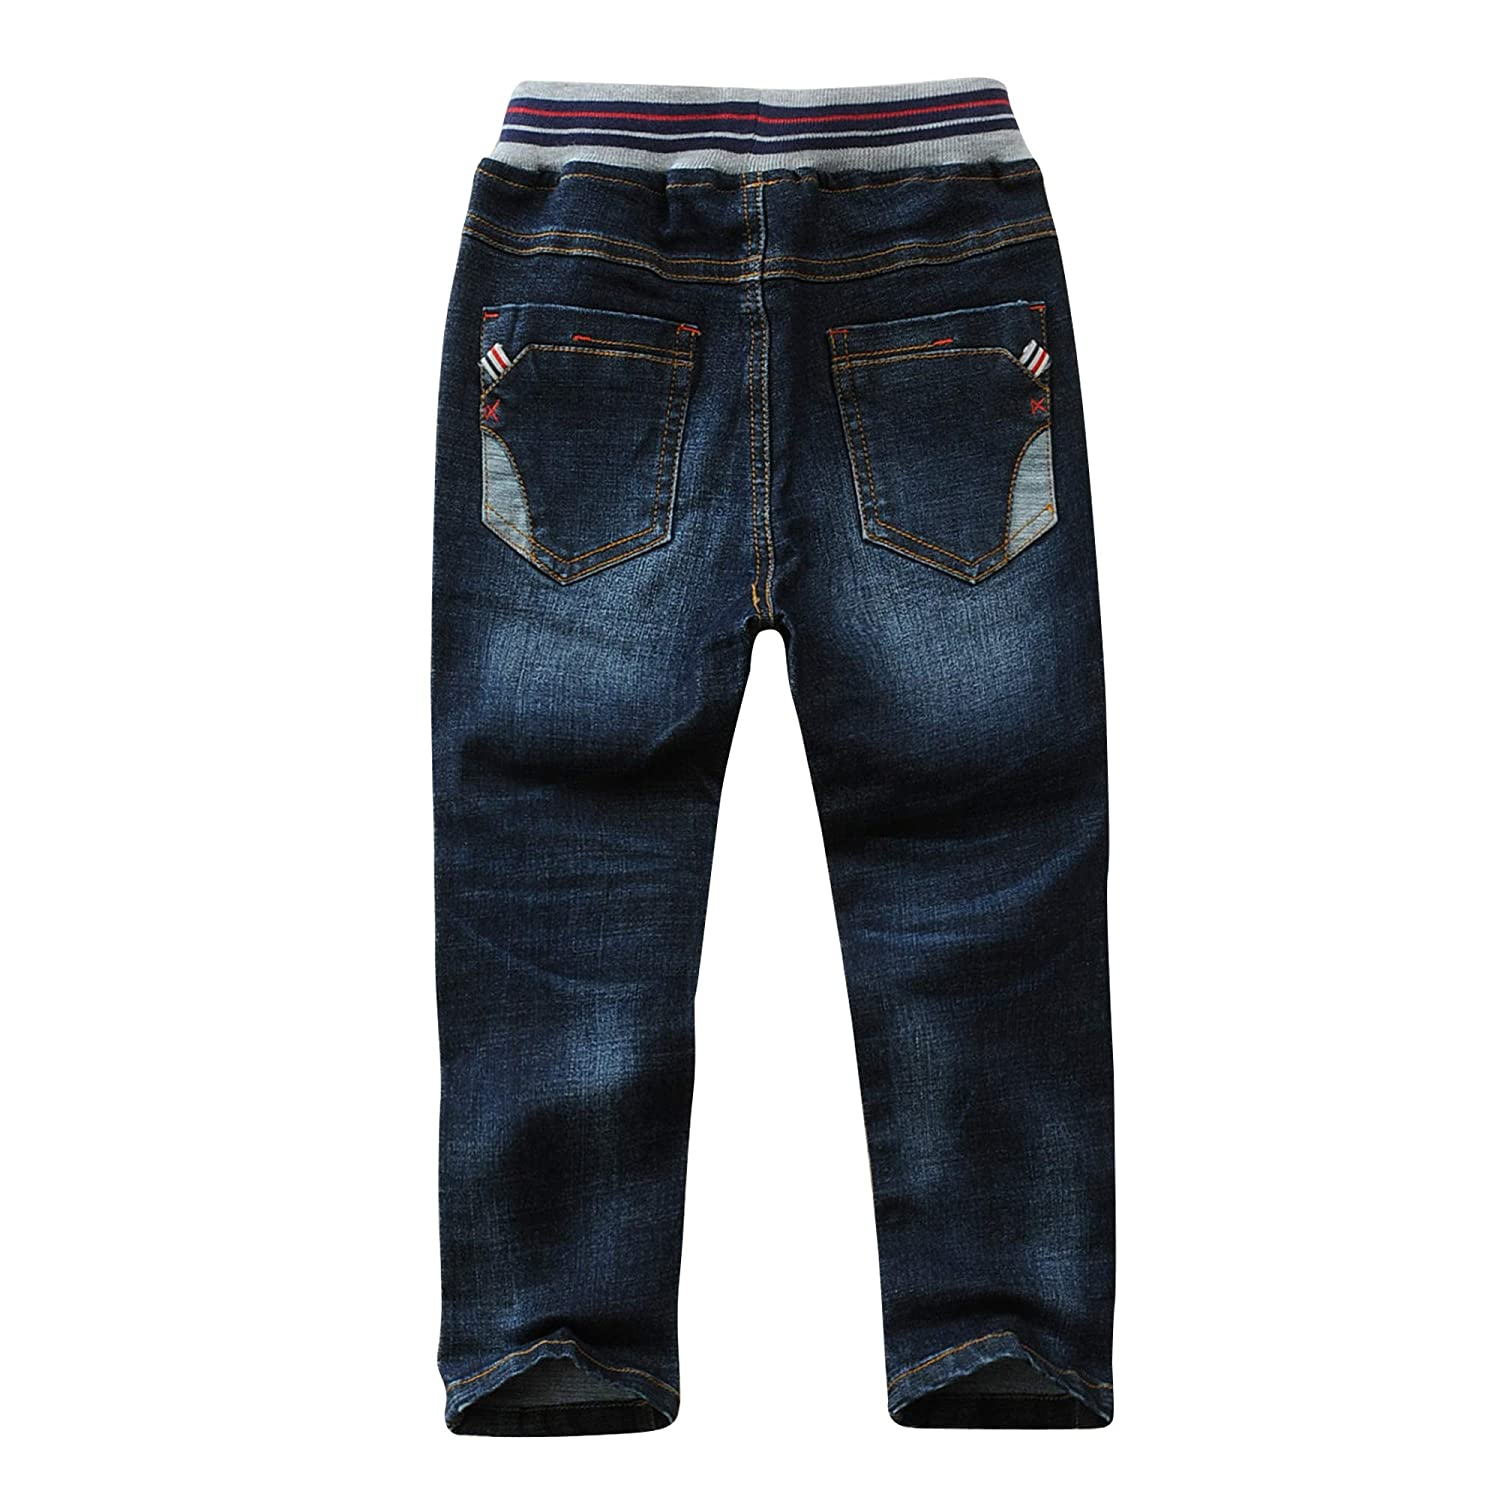 LAPLBEKE Boys Kids Jeans Elasticated Adjustable Waist Denim Pants